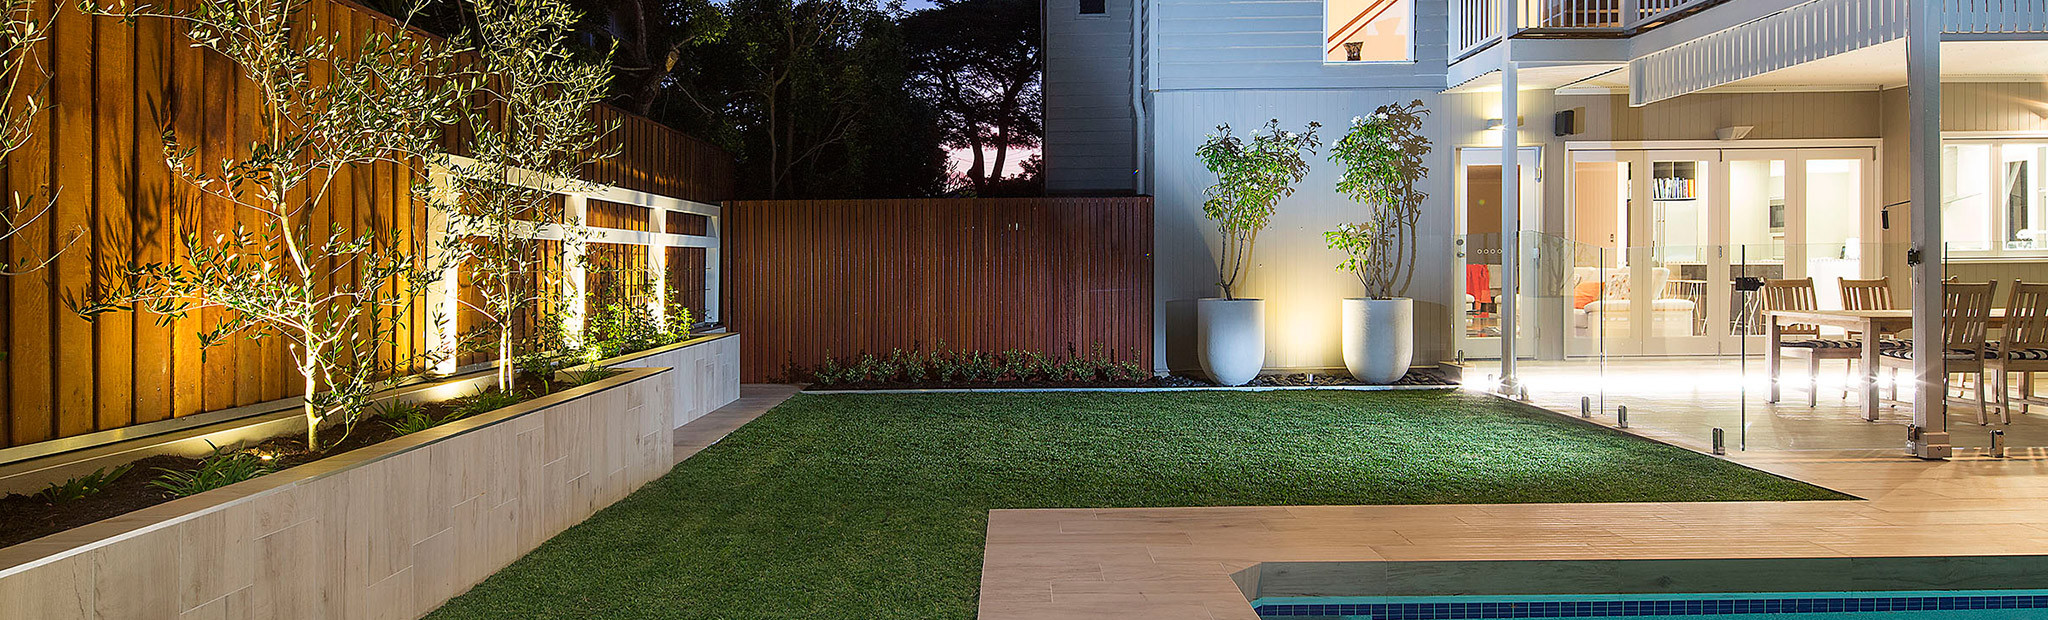 Landscape brisbane landscaping design for Landscape design brisbane